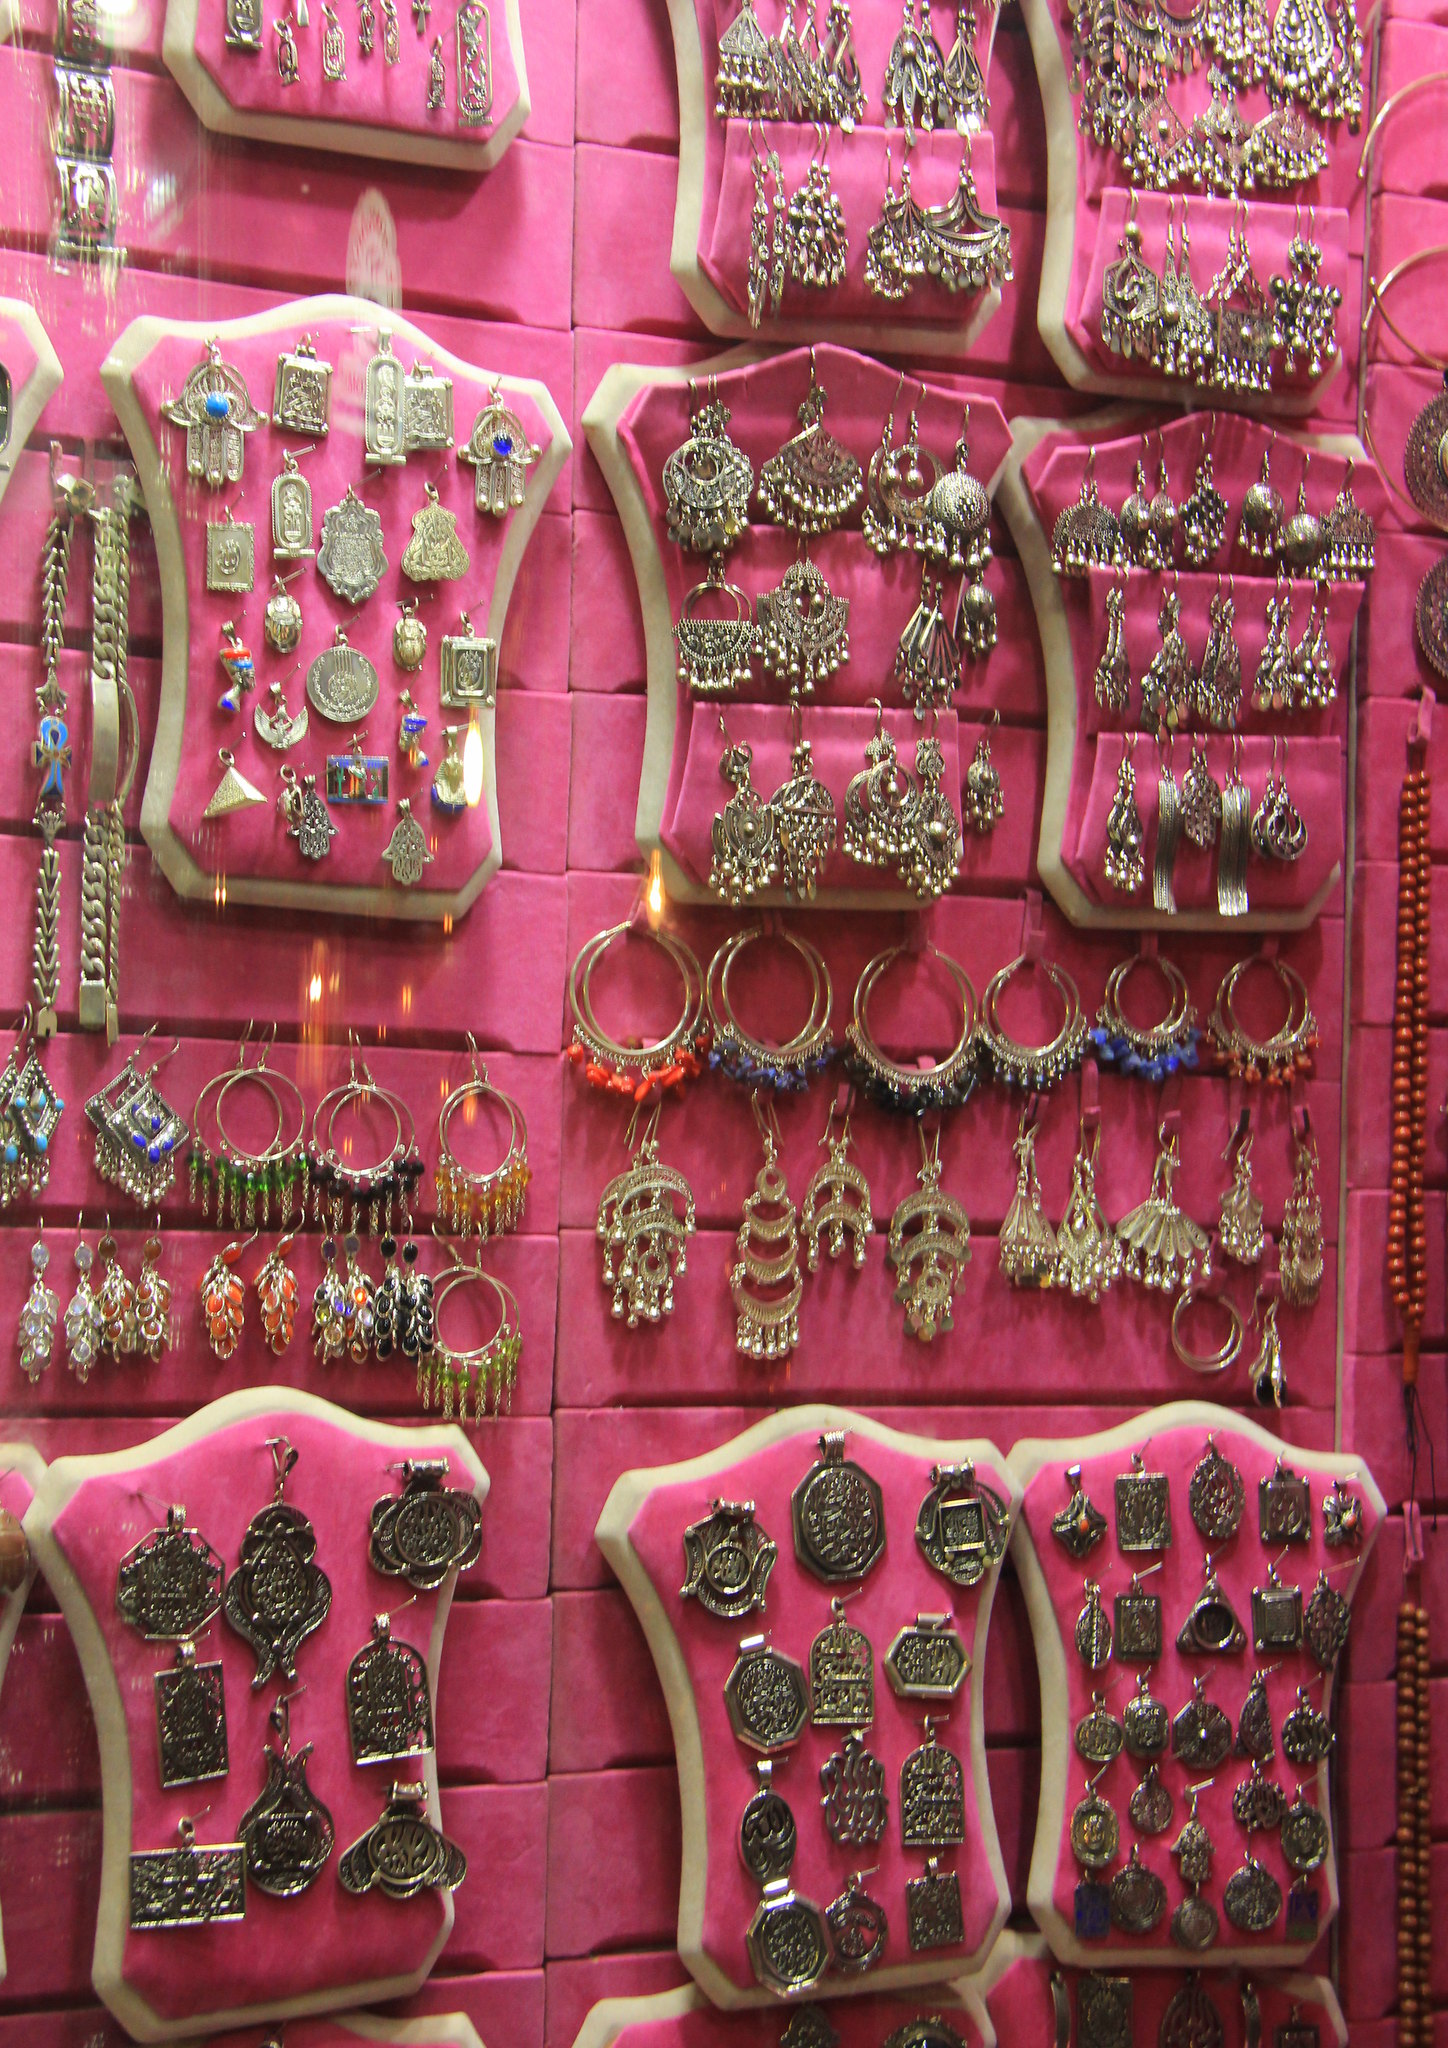 You can buy jewellery at khan el khalili